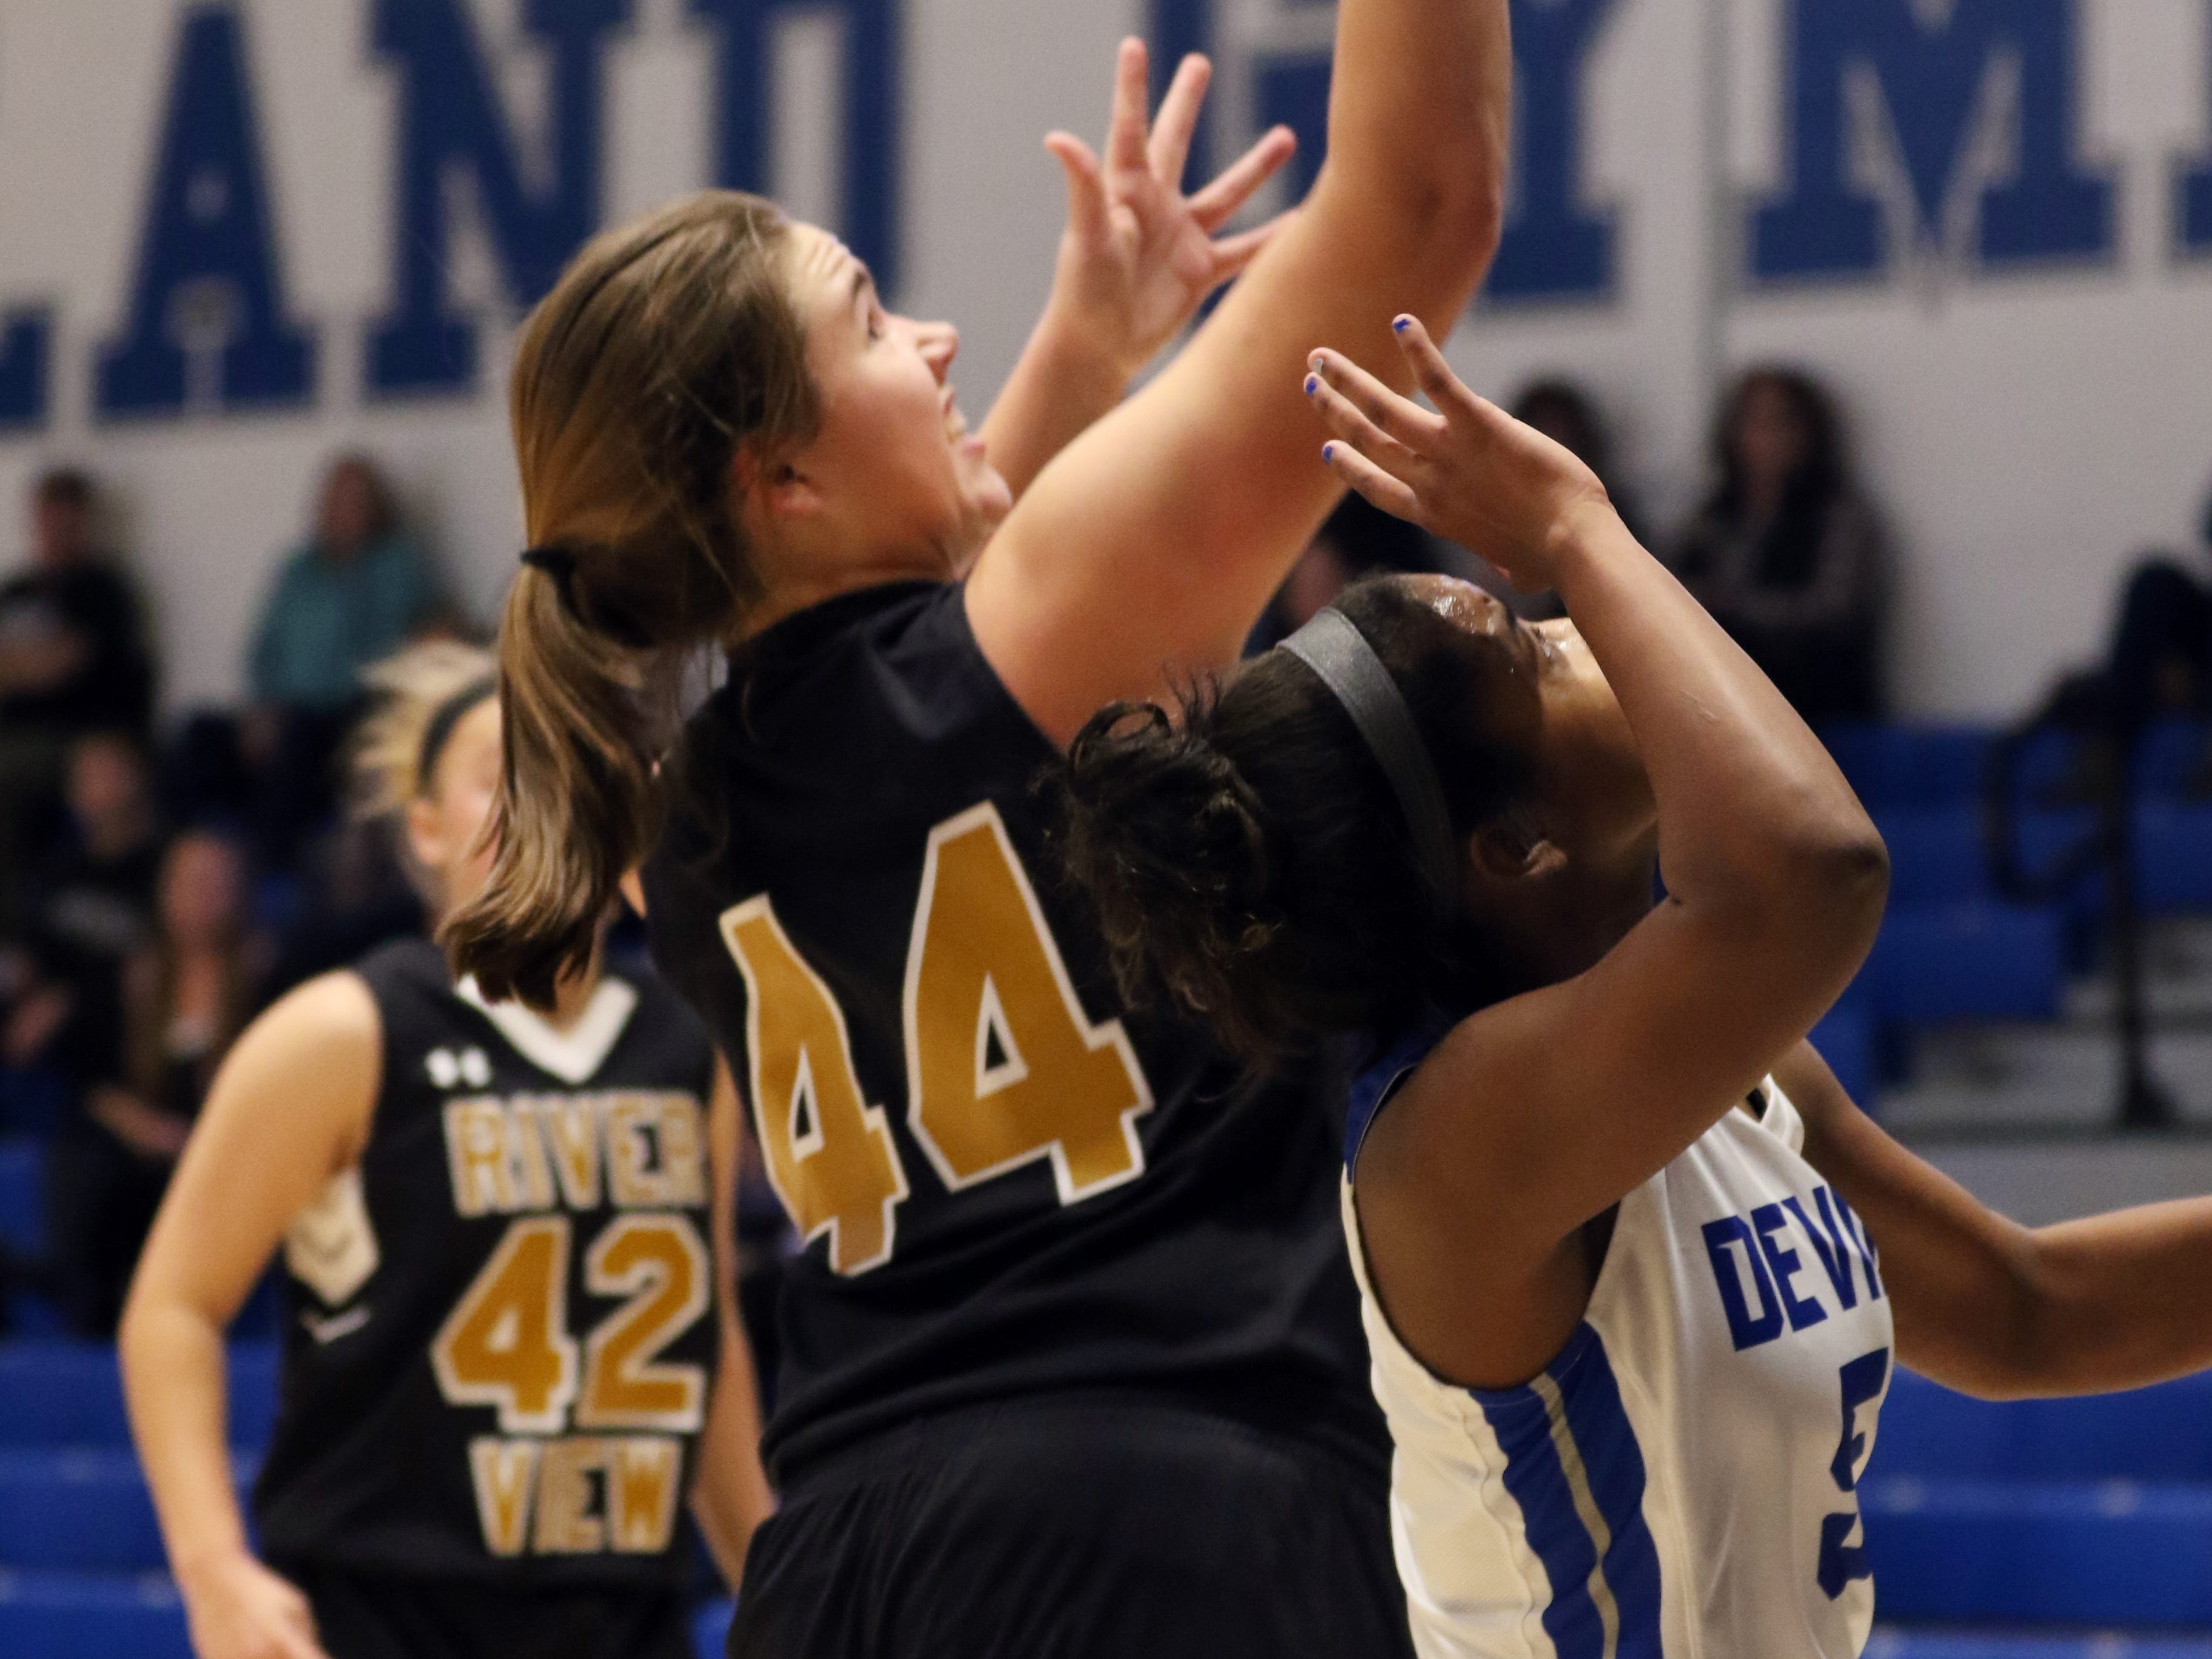 River View's Emma Anderson puts up a shot against Zanesville.